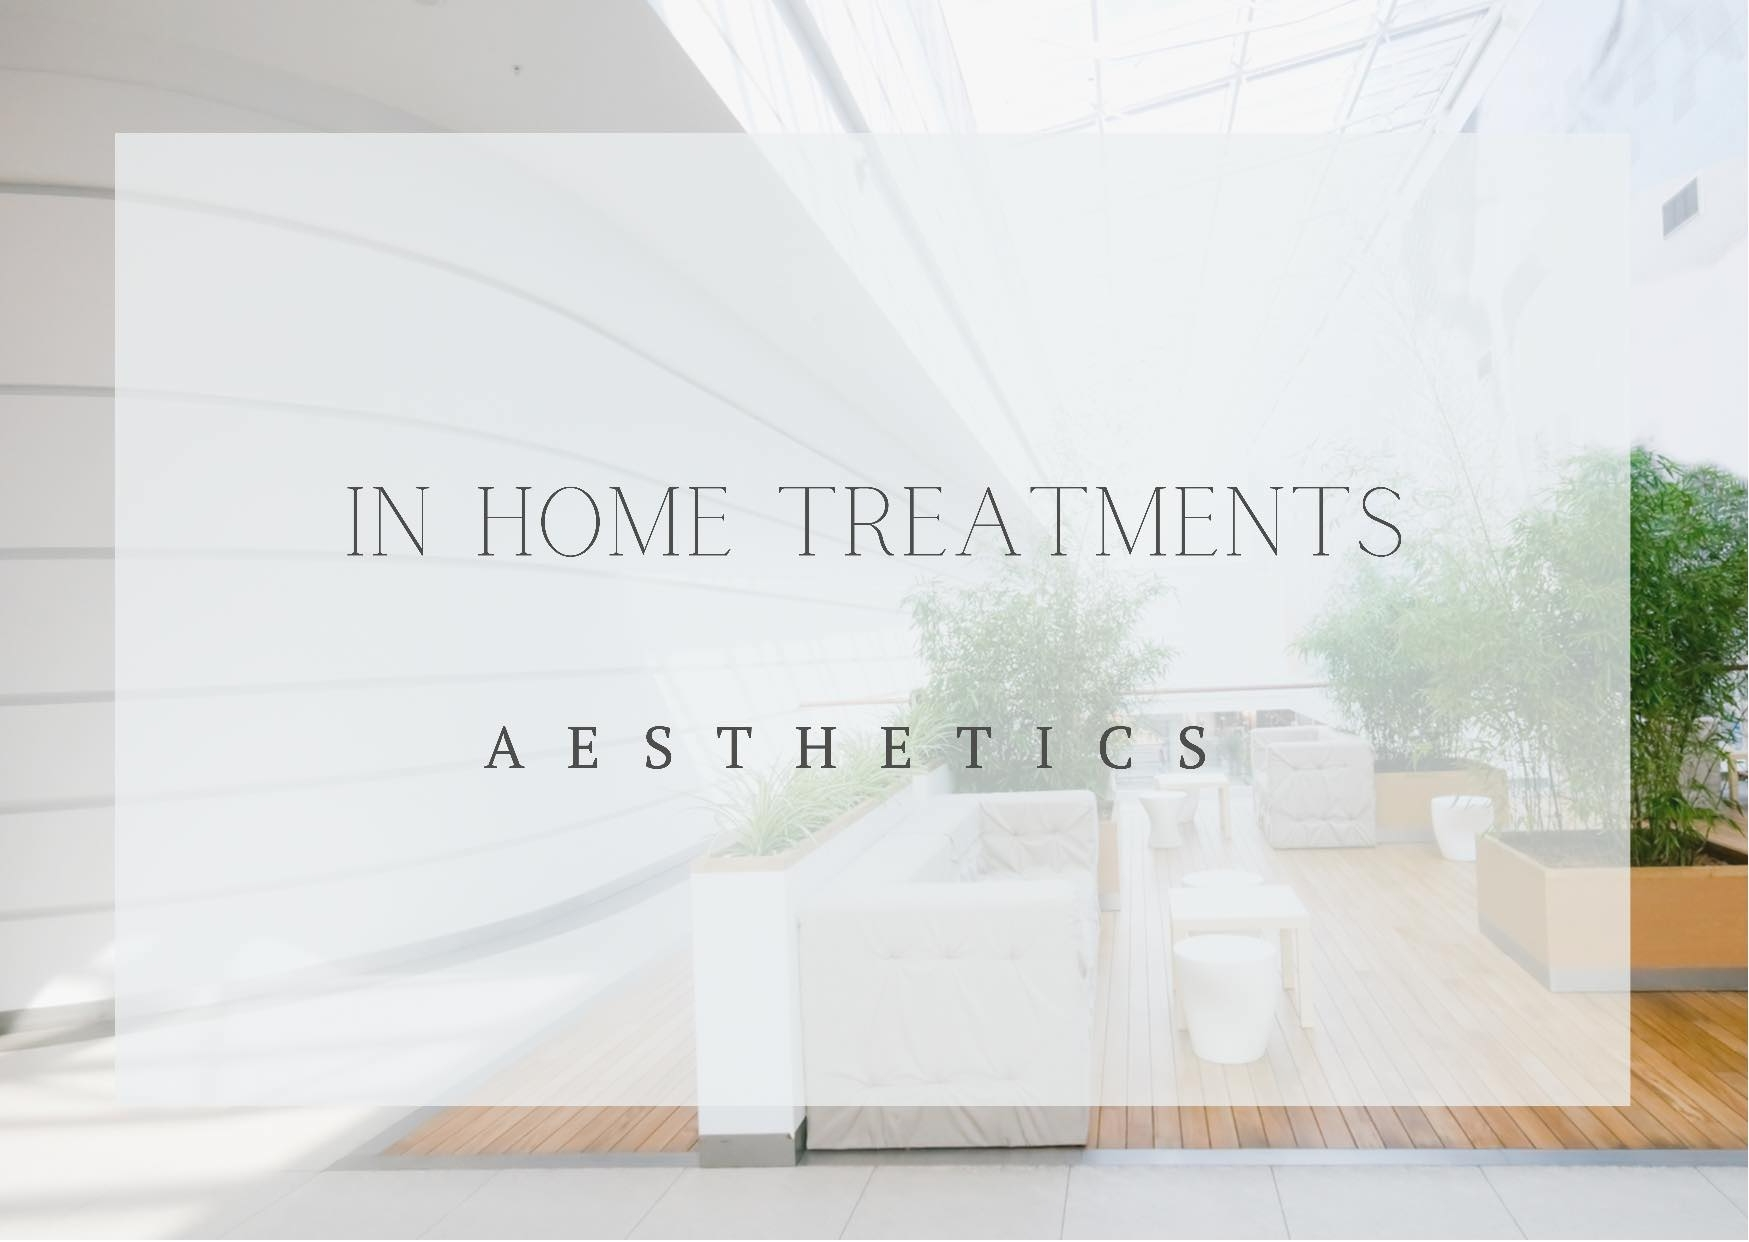 Inhome reatments (@inhometreatments) Cover Image